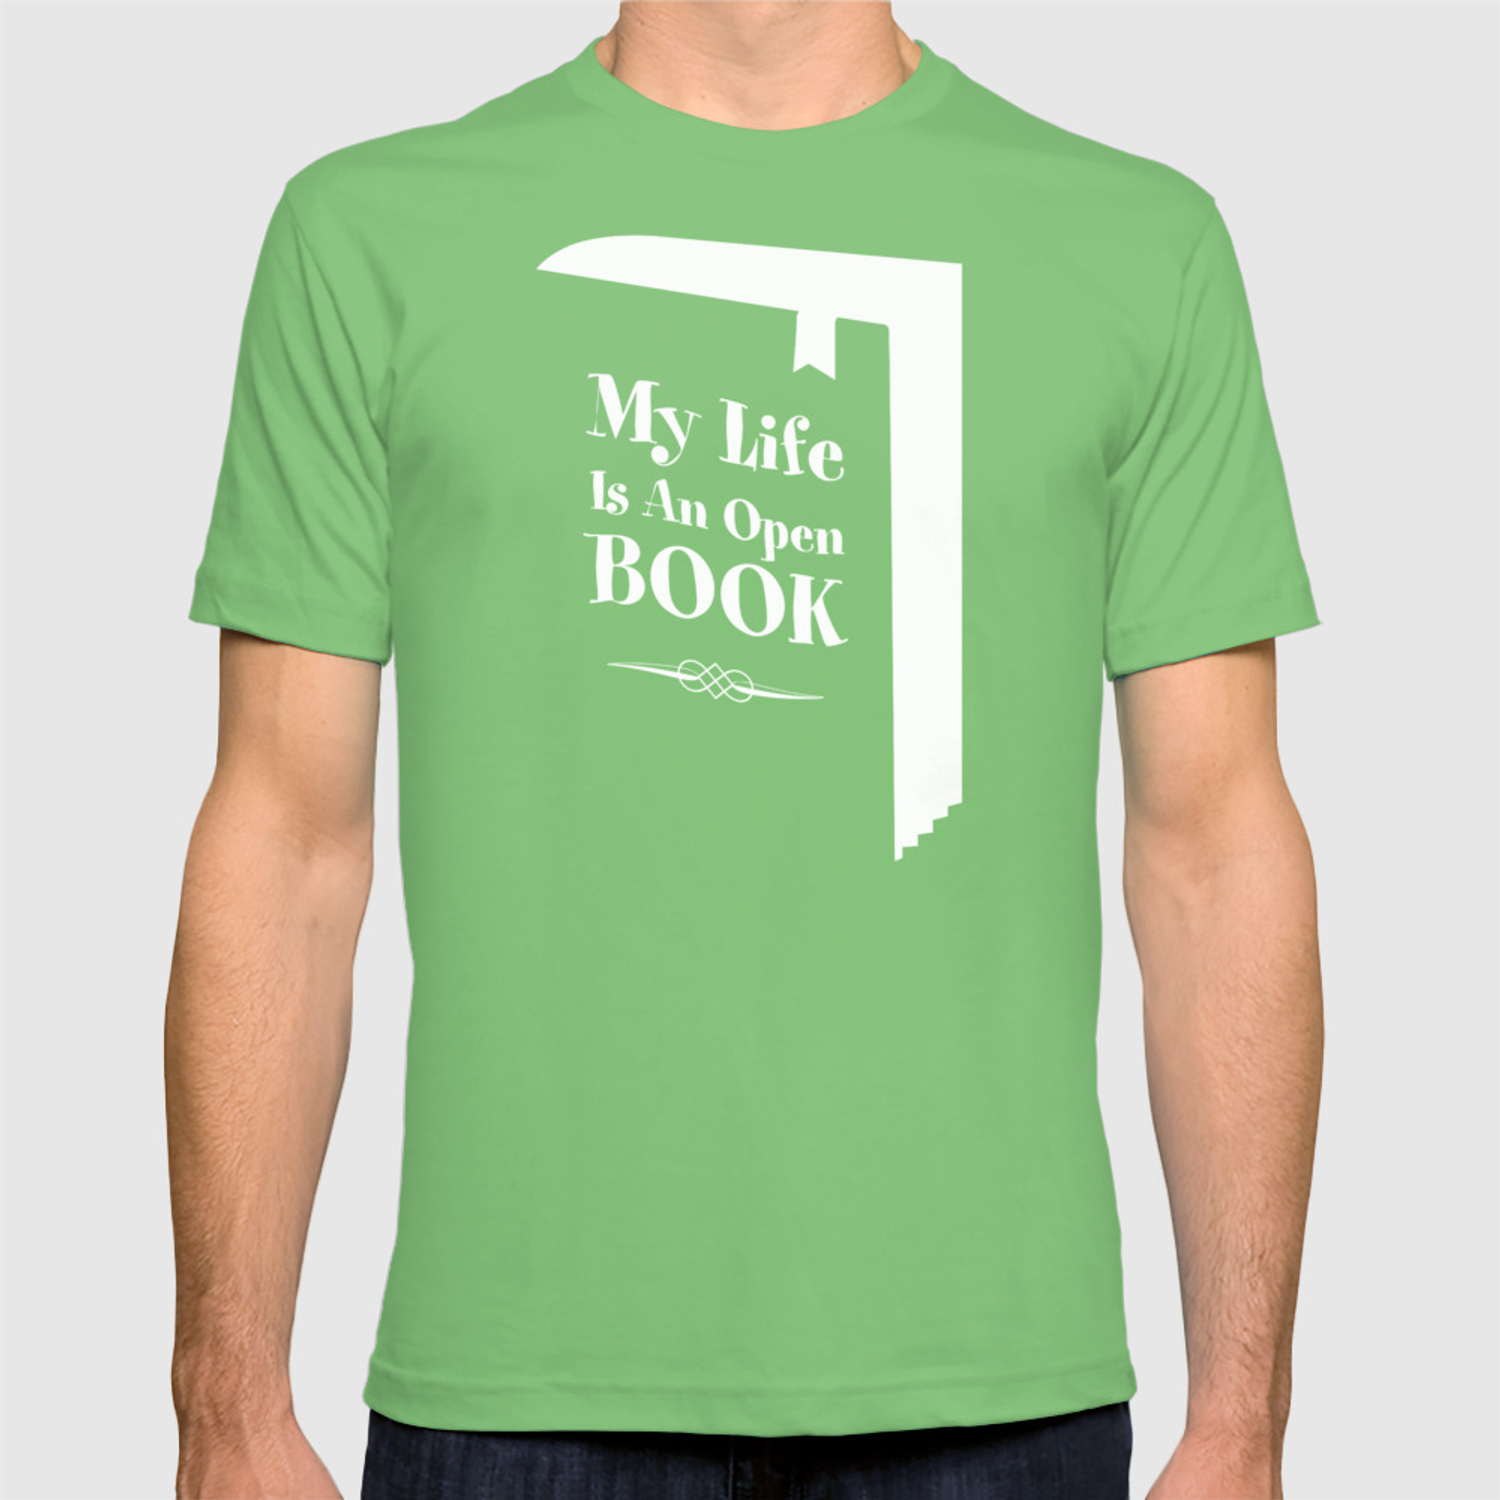 ea80b27e My Life Is An Open Book T-shirt by grandeduc   Society6